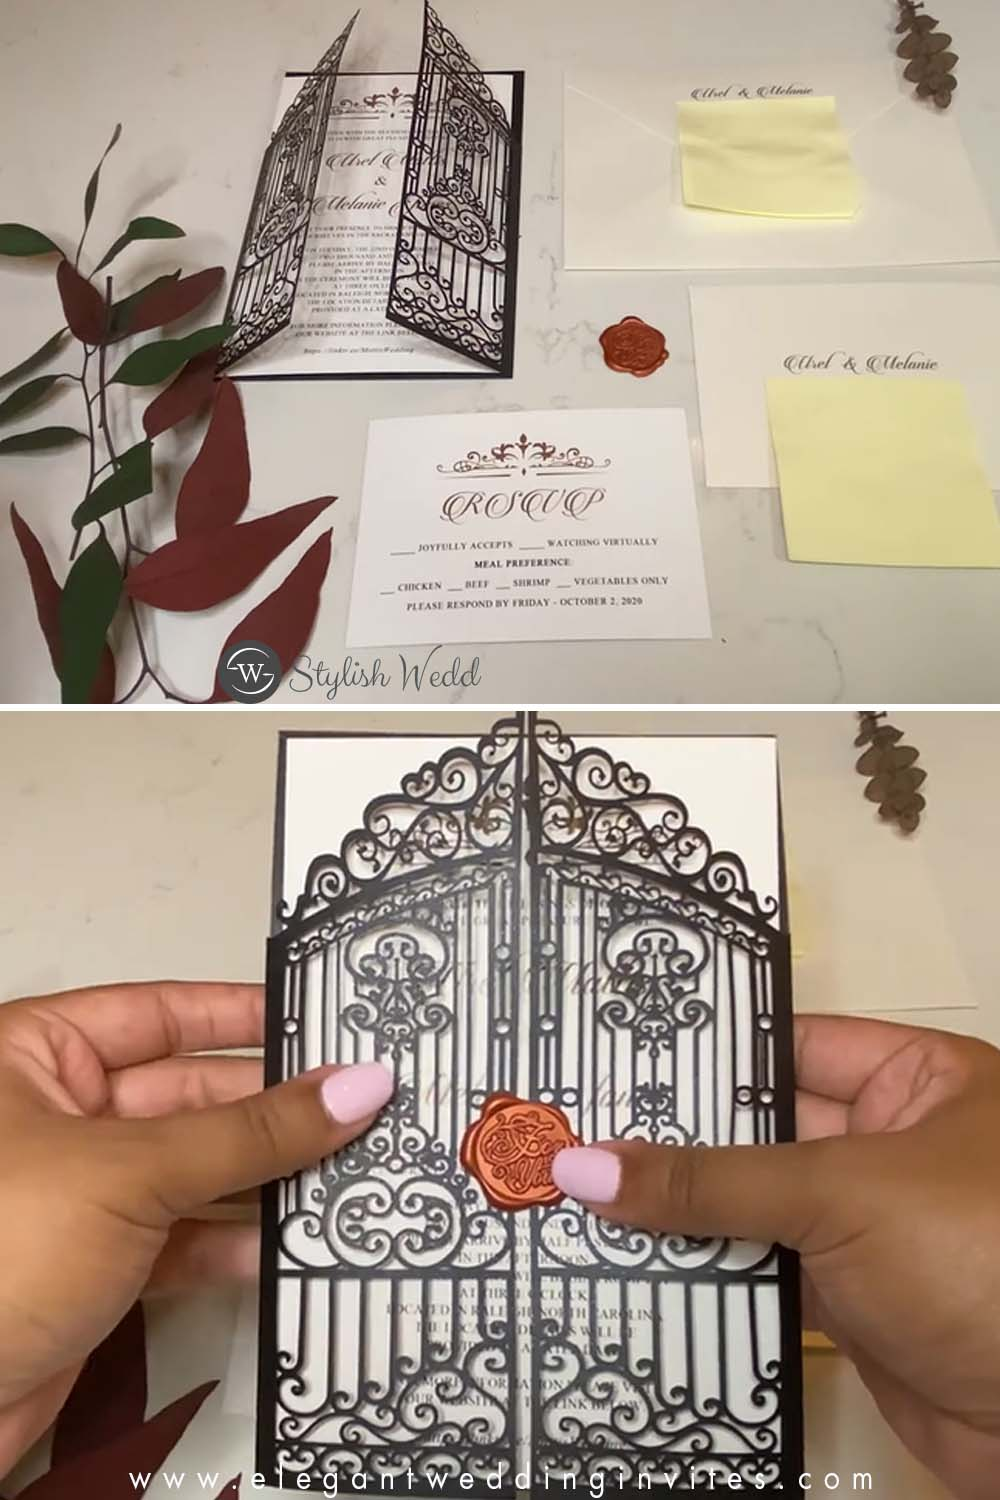 Influencer's Video Where to Buy Your Own Wedding Invitations online for fall wedding ideas